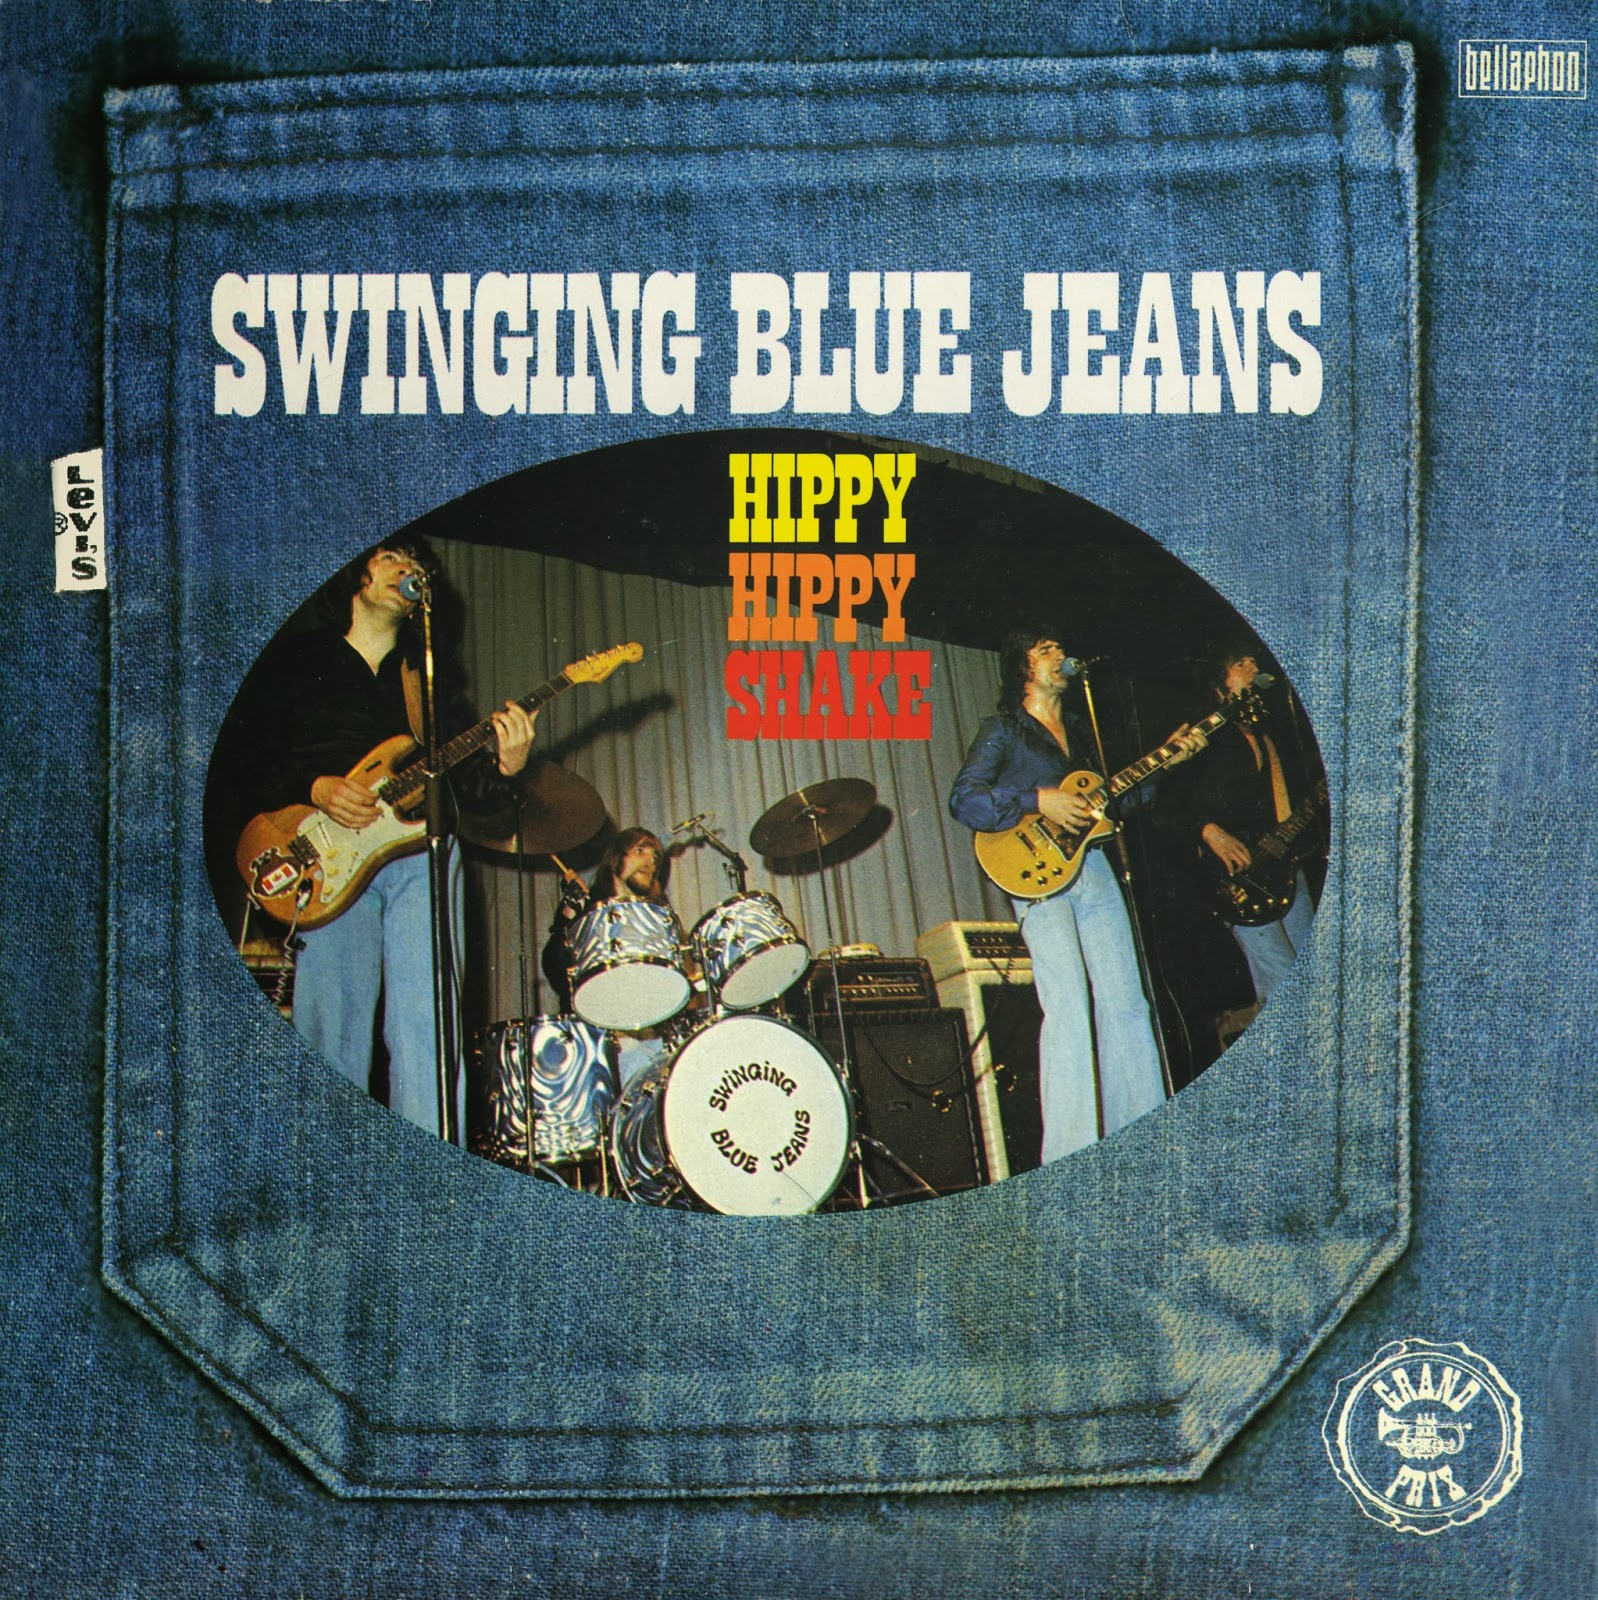 Blue jeans swinging chick